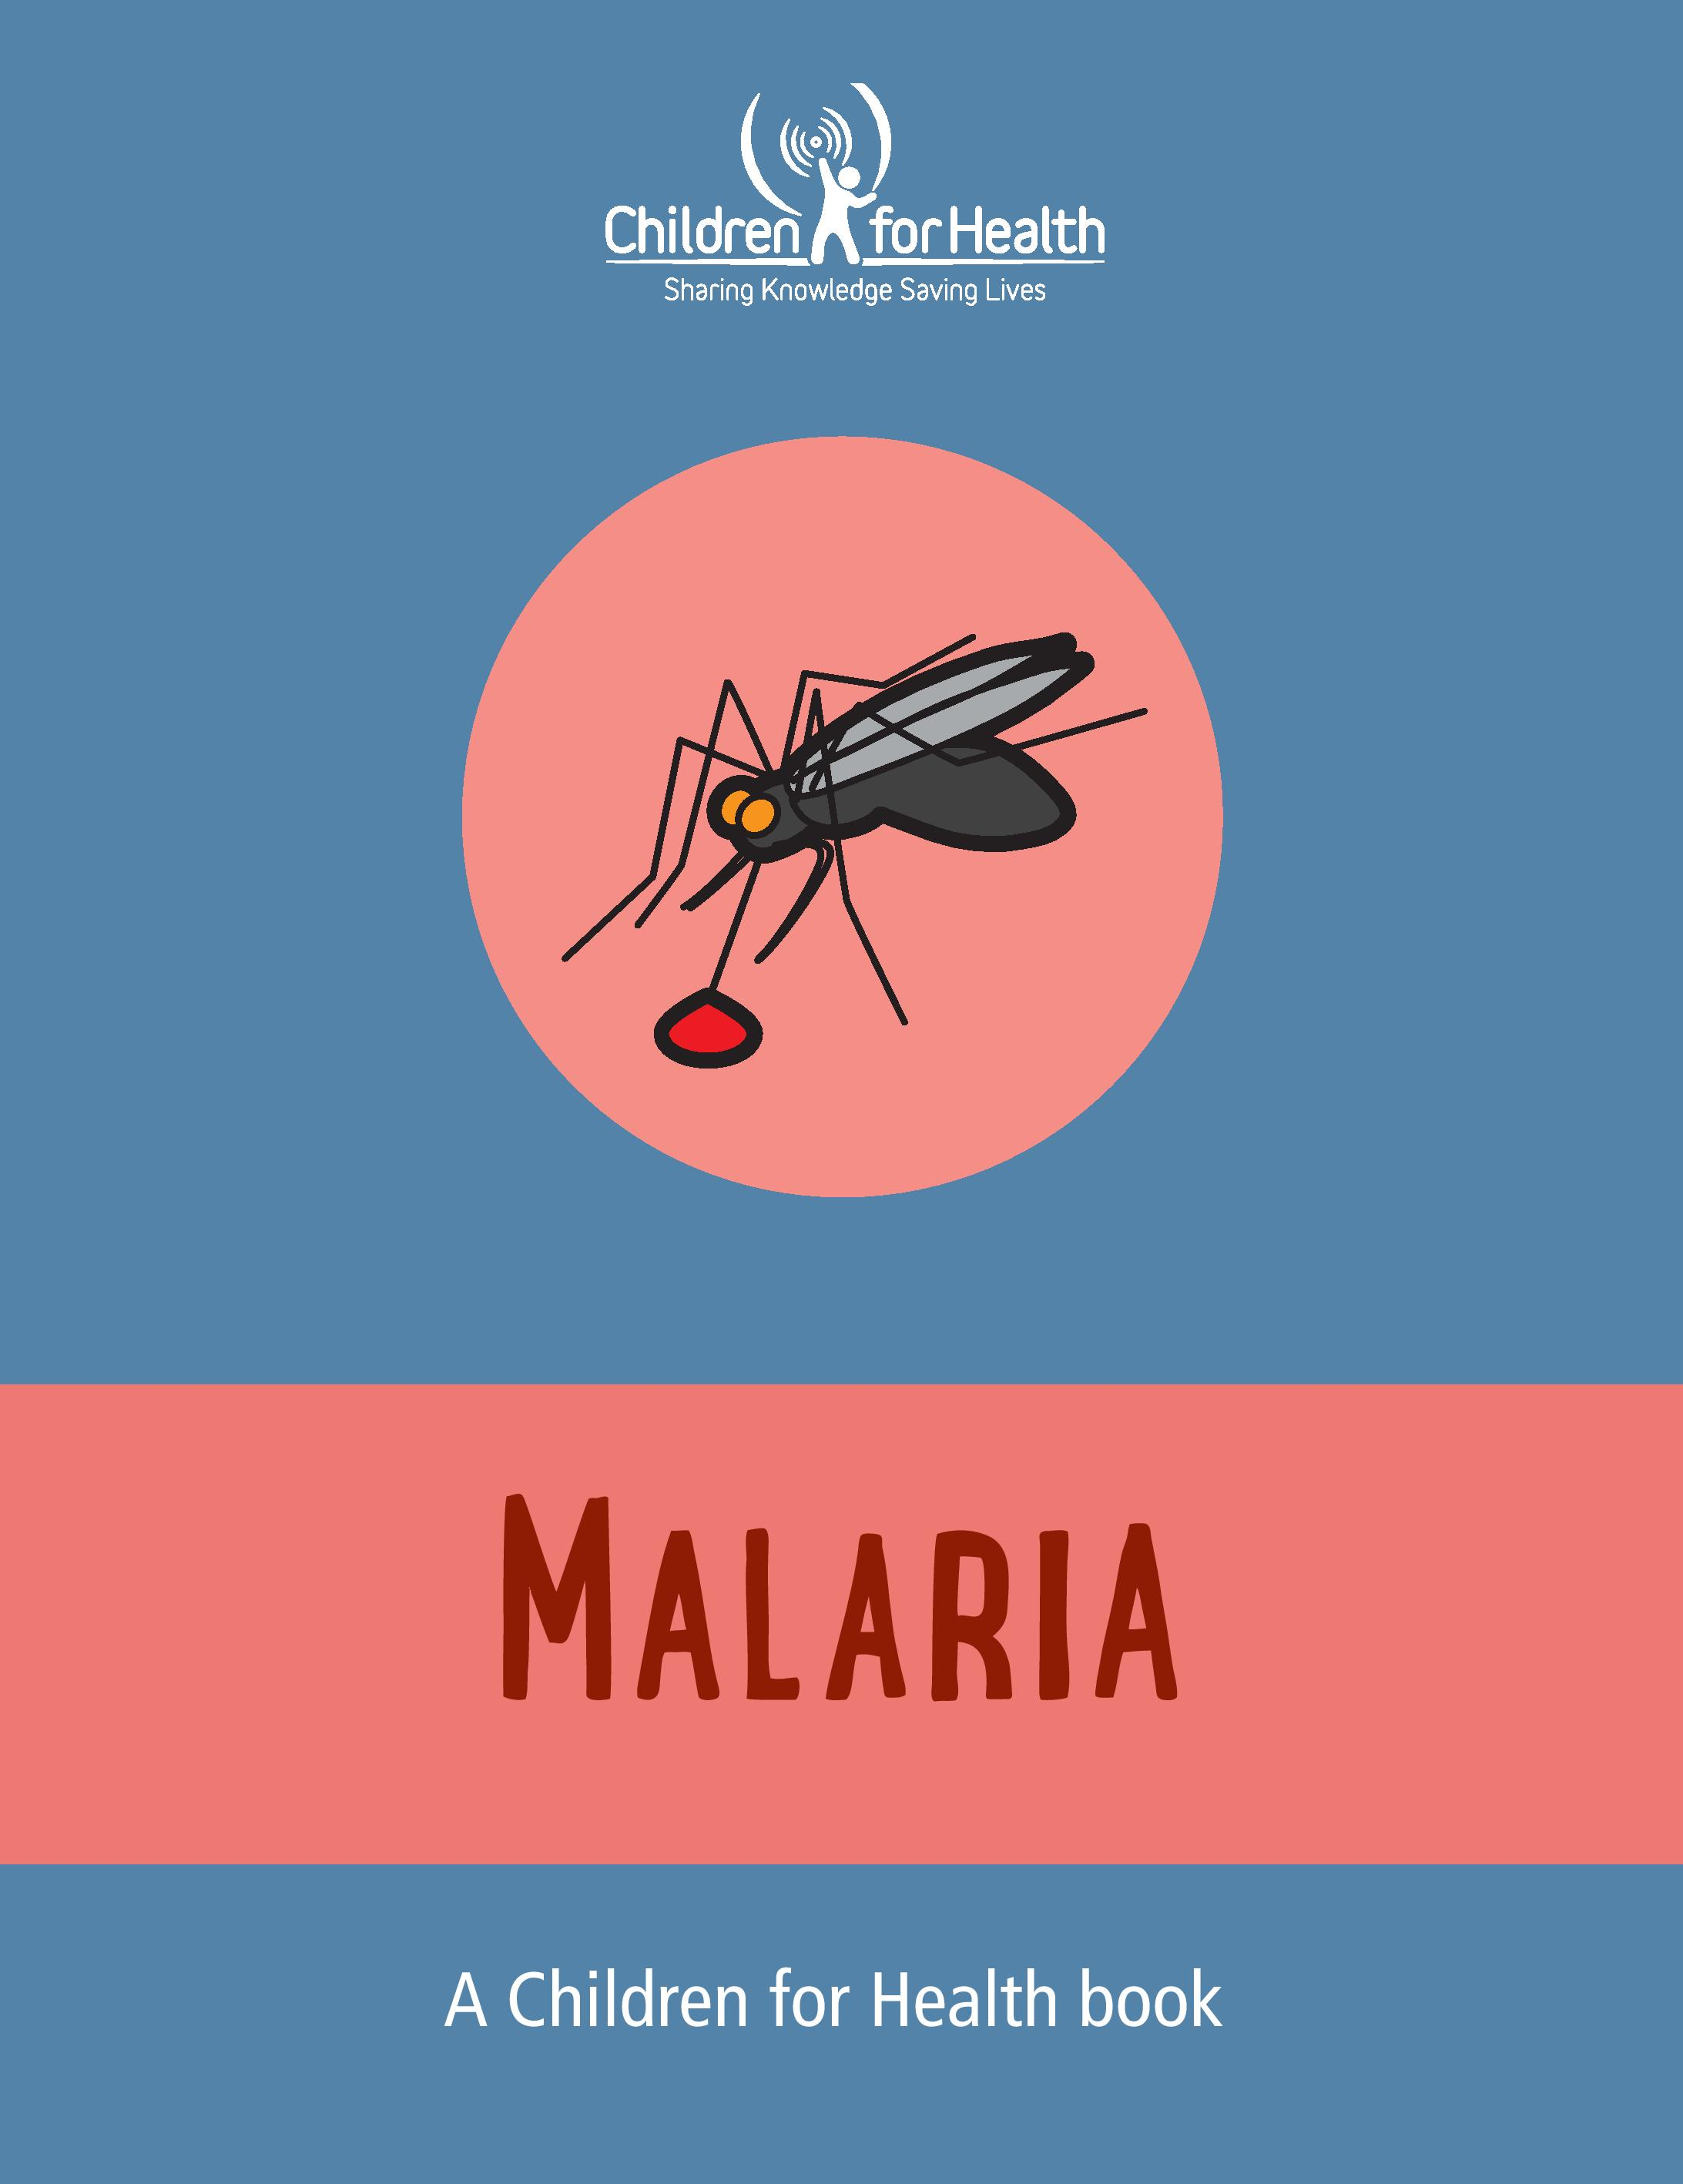 What the cover of a Malaria book from Children for Health might look like. It has a blue background. There is a red circle with a cartoon mosquito in the middle. Below that is a red banner with 'Malaria' written on it.